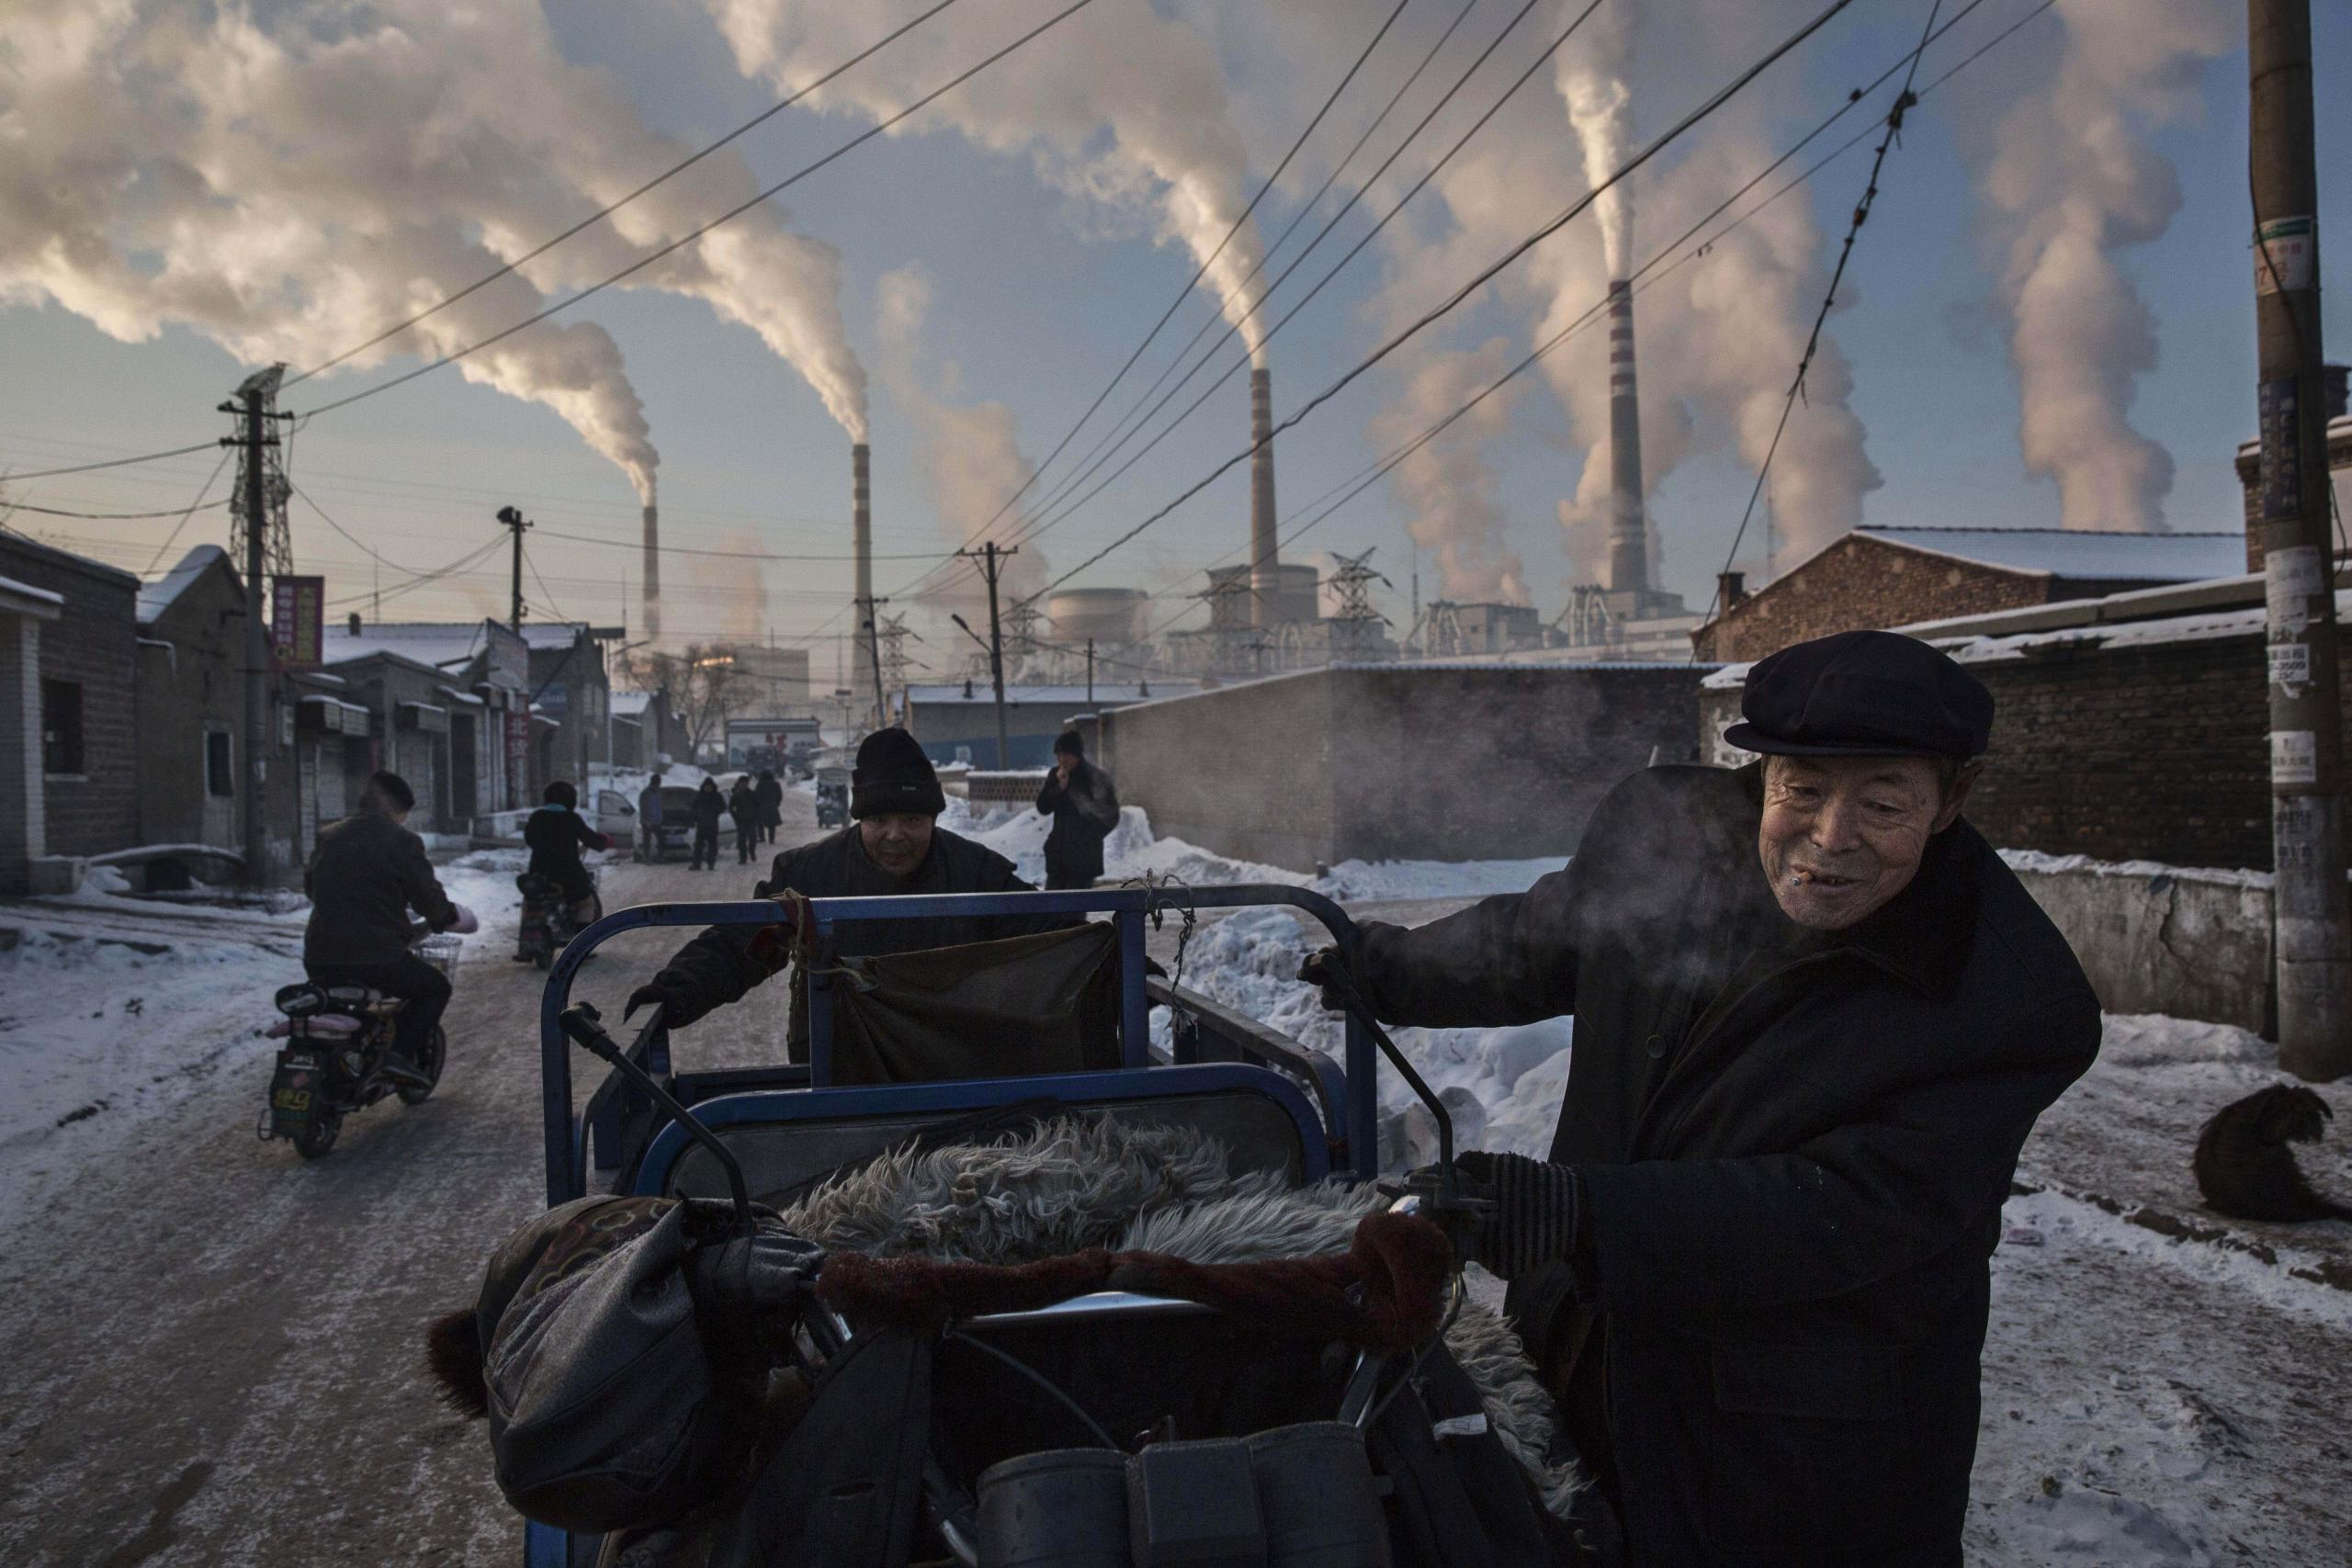 China's Coal Addiction